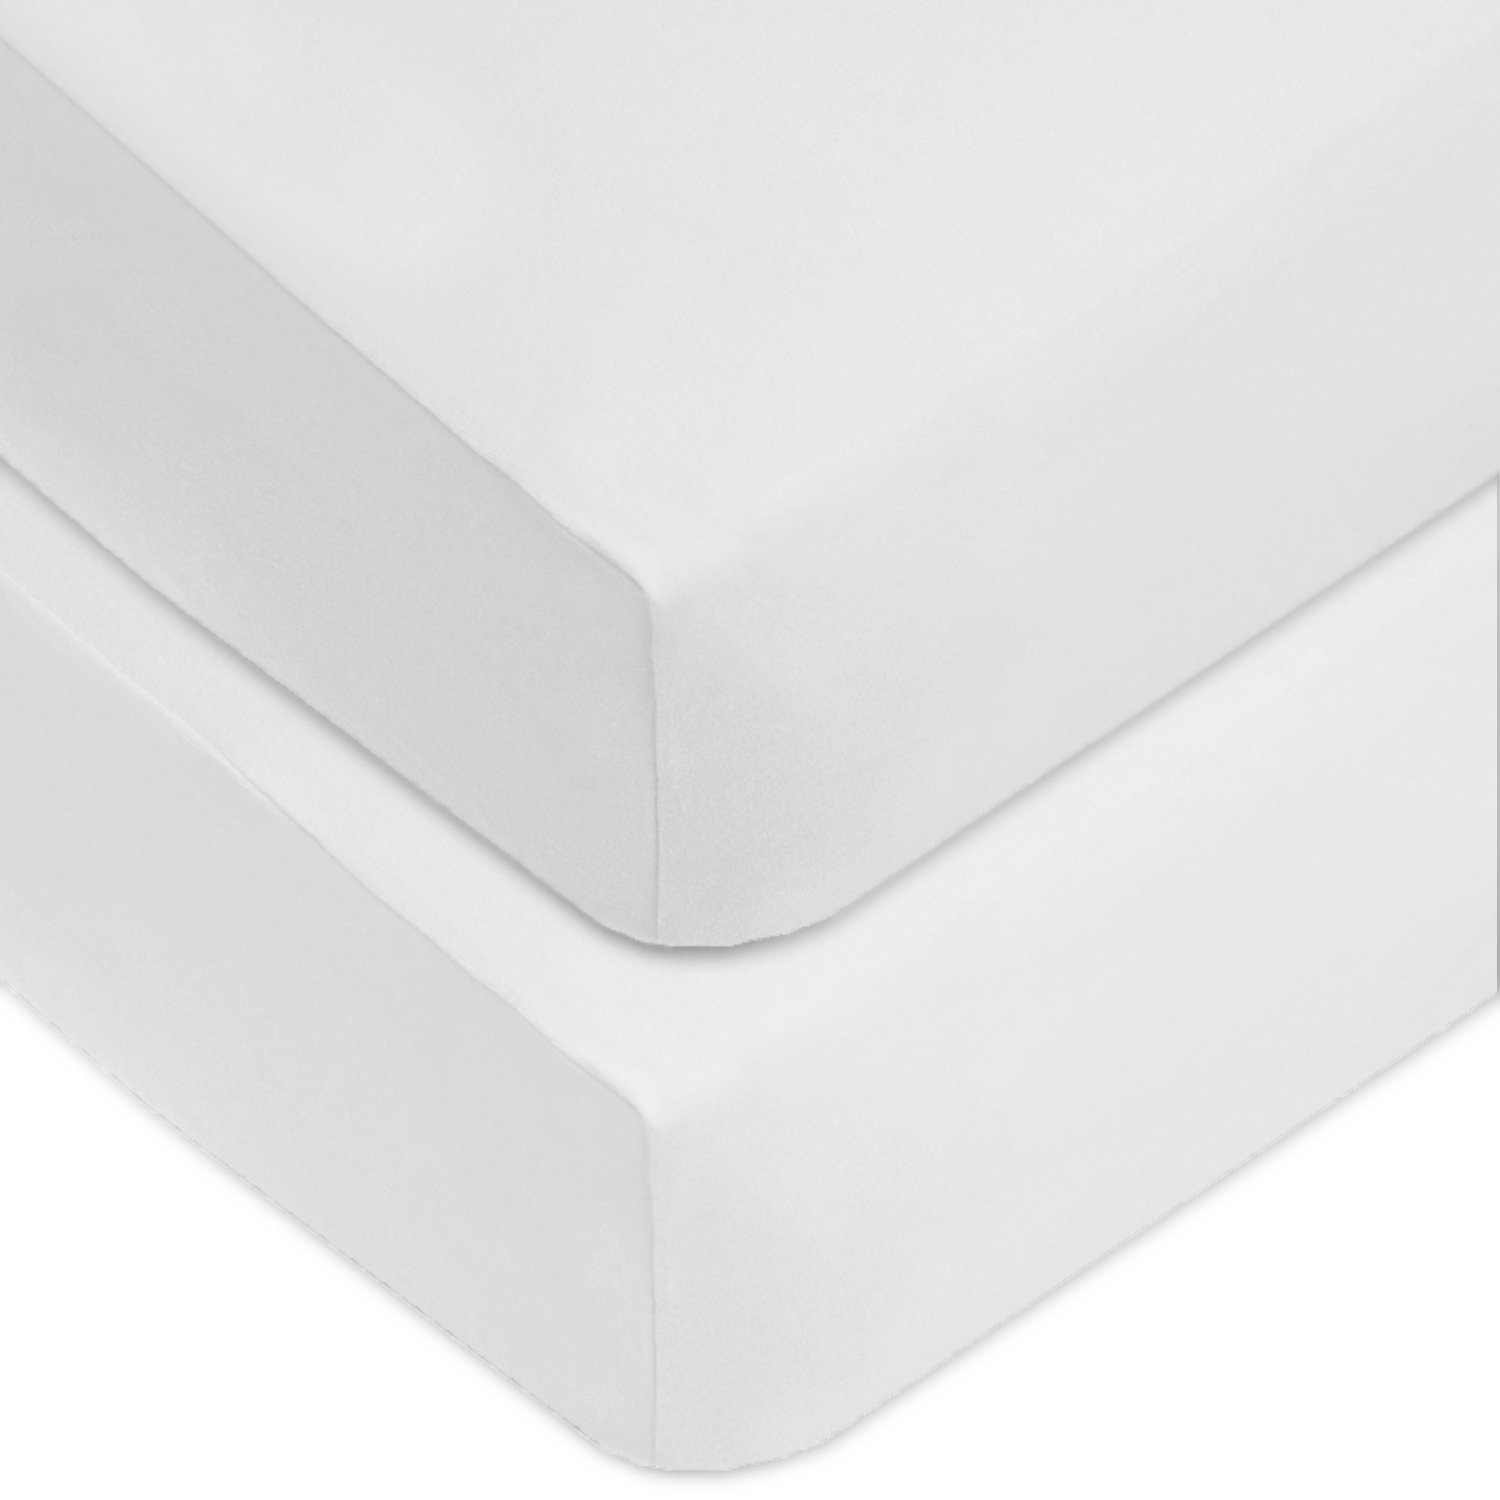 American Baby Company 2 Pack 100% Cotton Value Jersey Knit Fitted Crib Sheet for Standard Crib and Toddler Mattresses, White, for Boys and Girls by American Baby Company